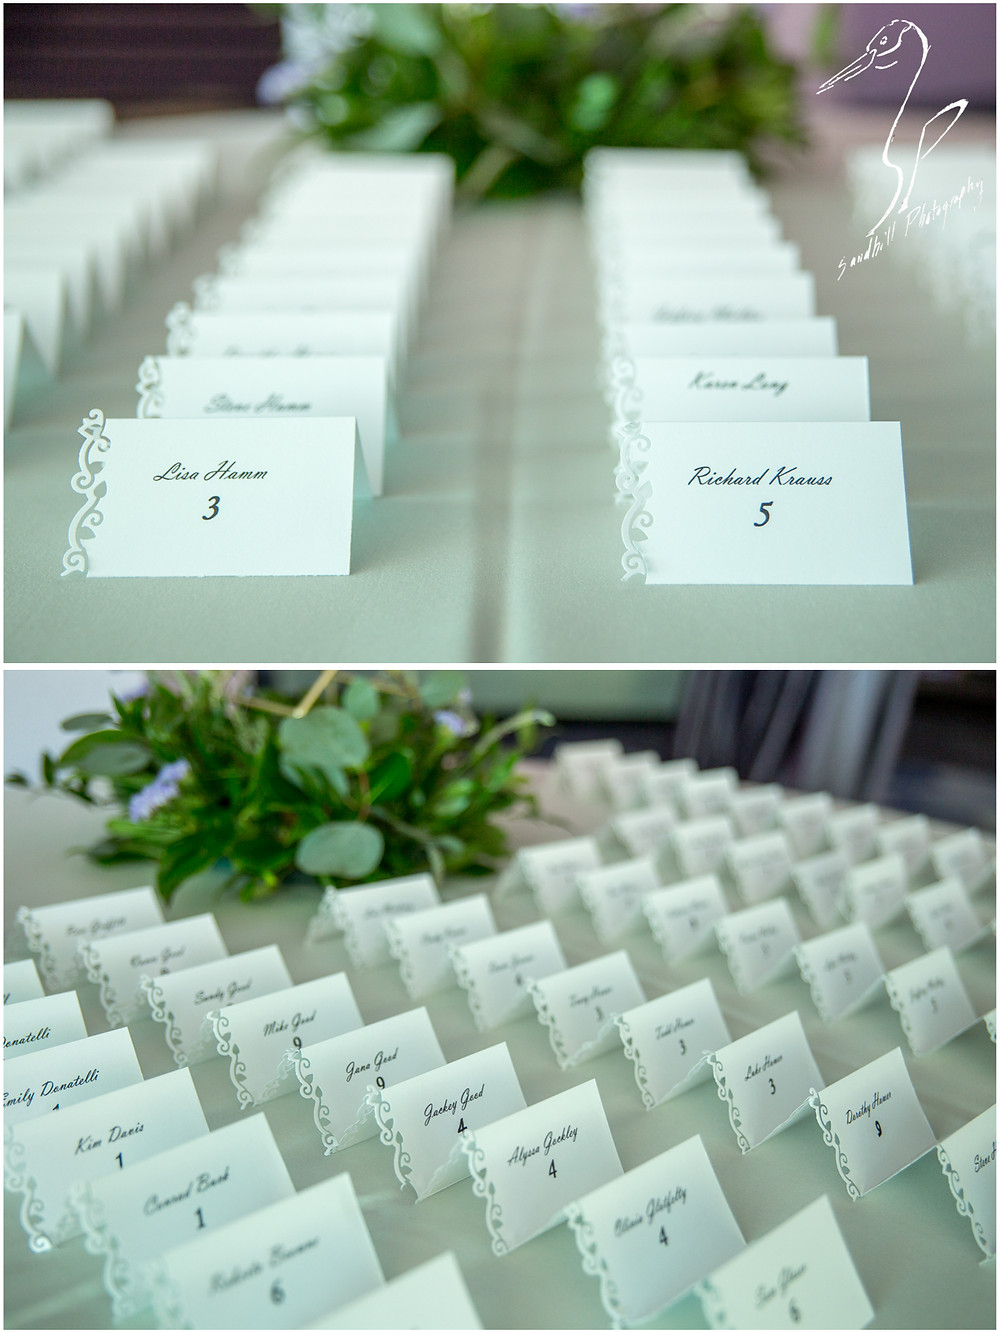 Van Wezel Wedding Photography, reception details of place setting cards